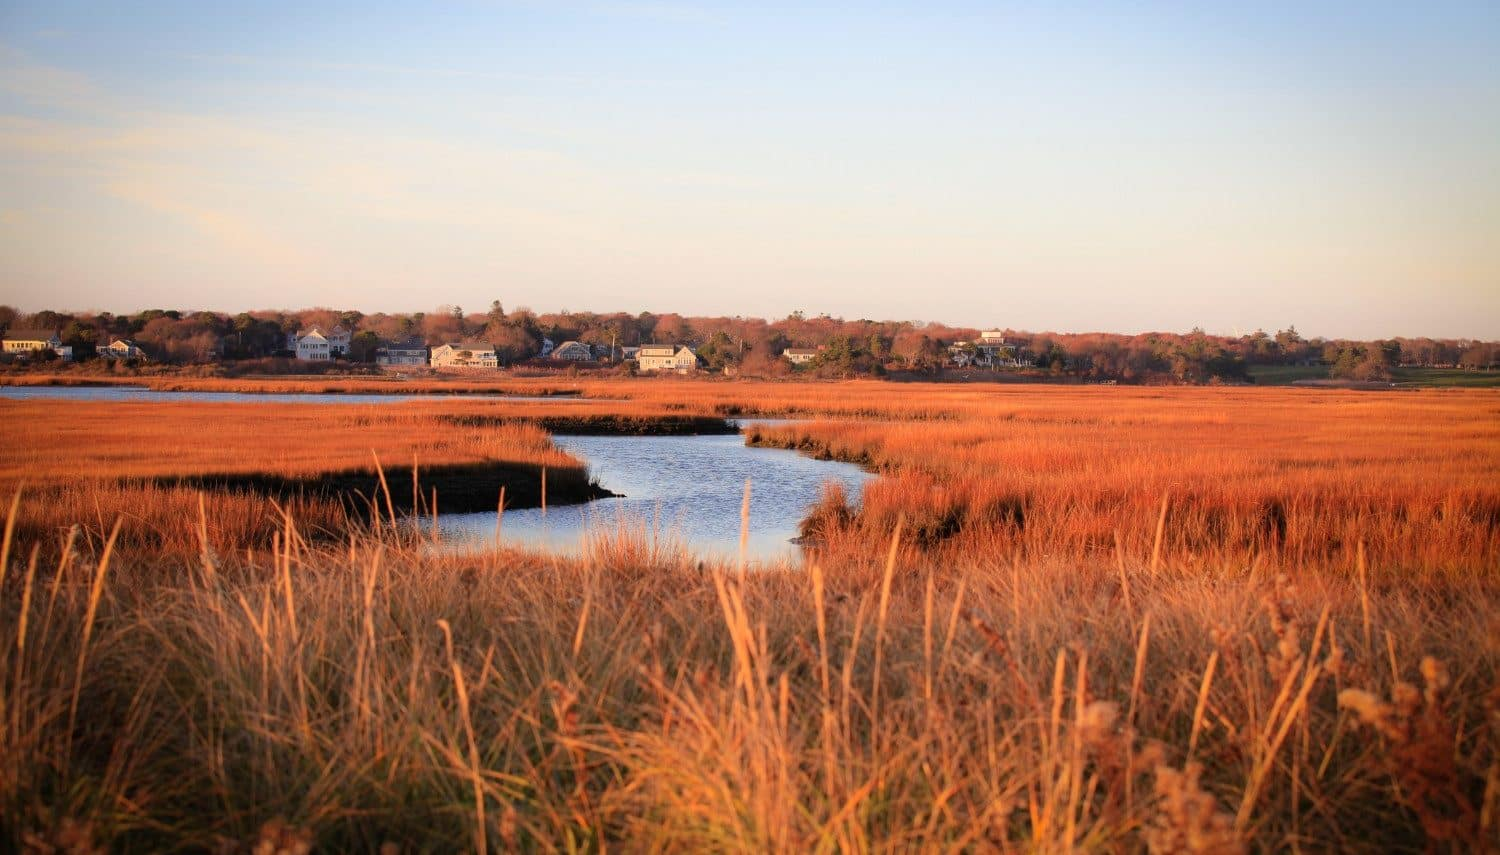 a view of Hyannis in Cape Cod in the fall